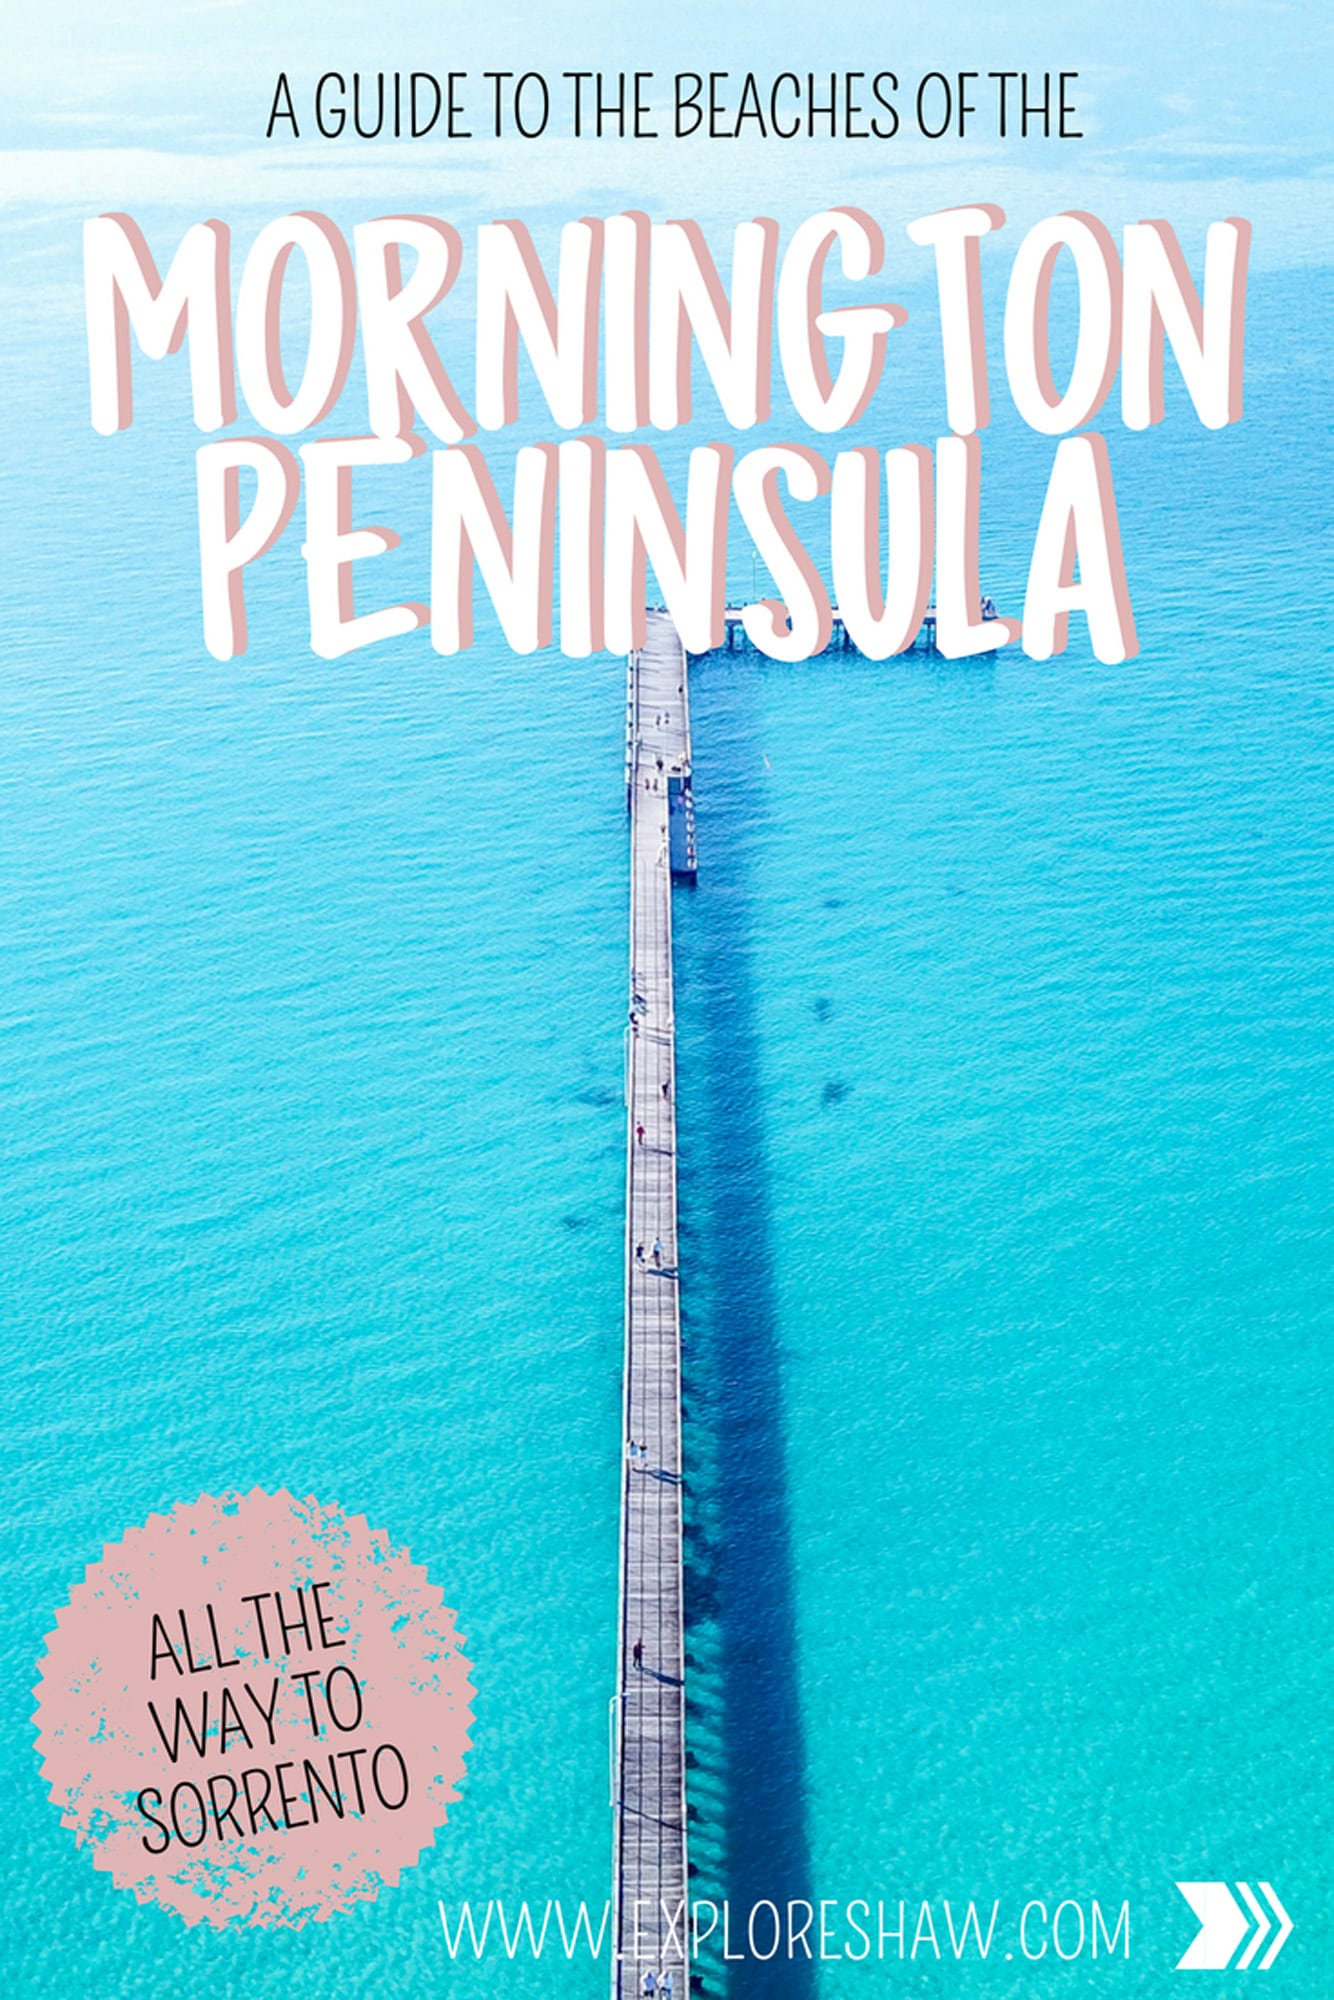 A Guide To The Beaches Of The Mornington Peninsula